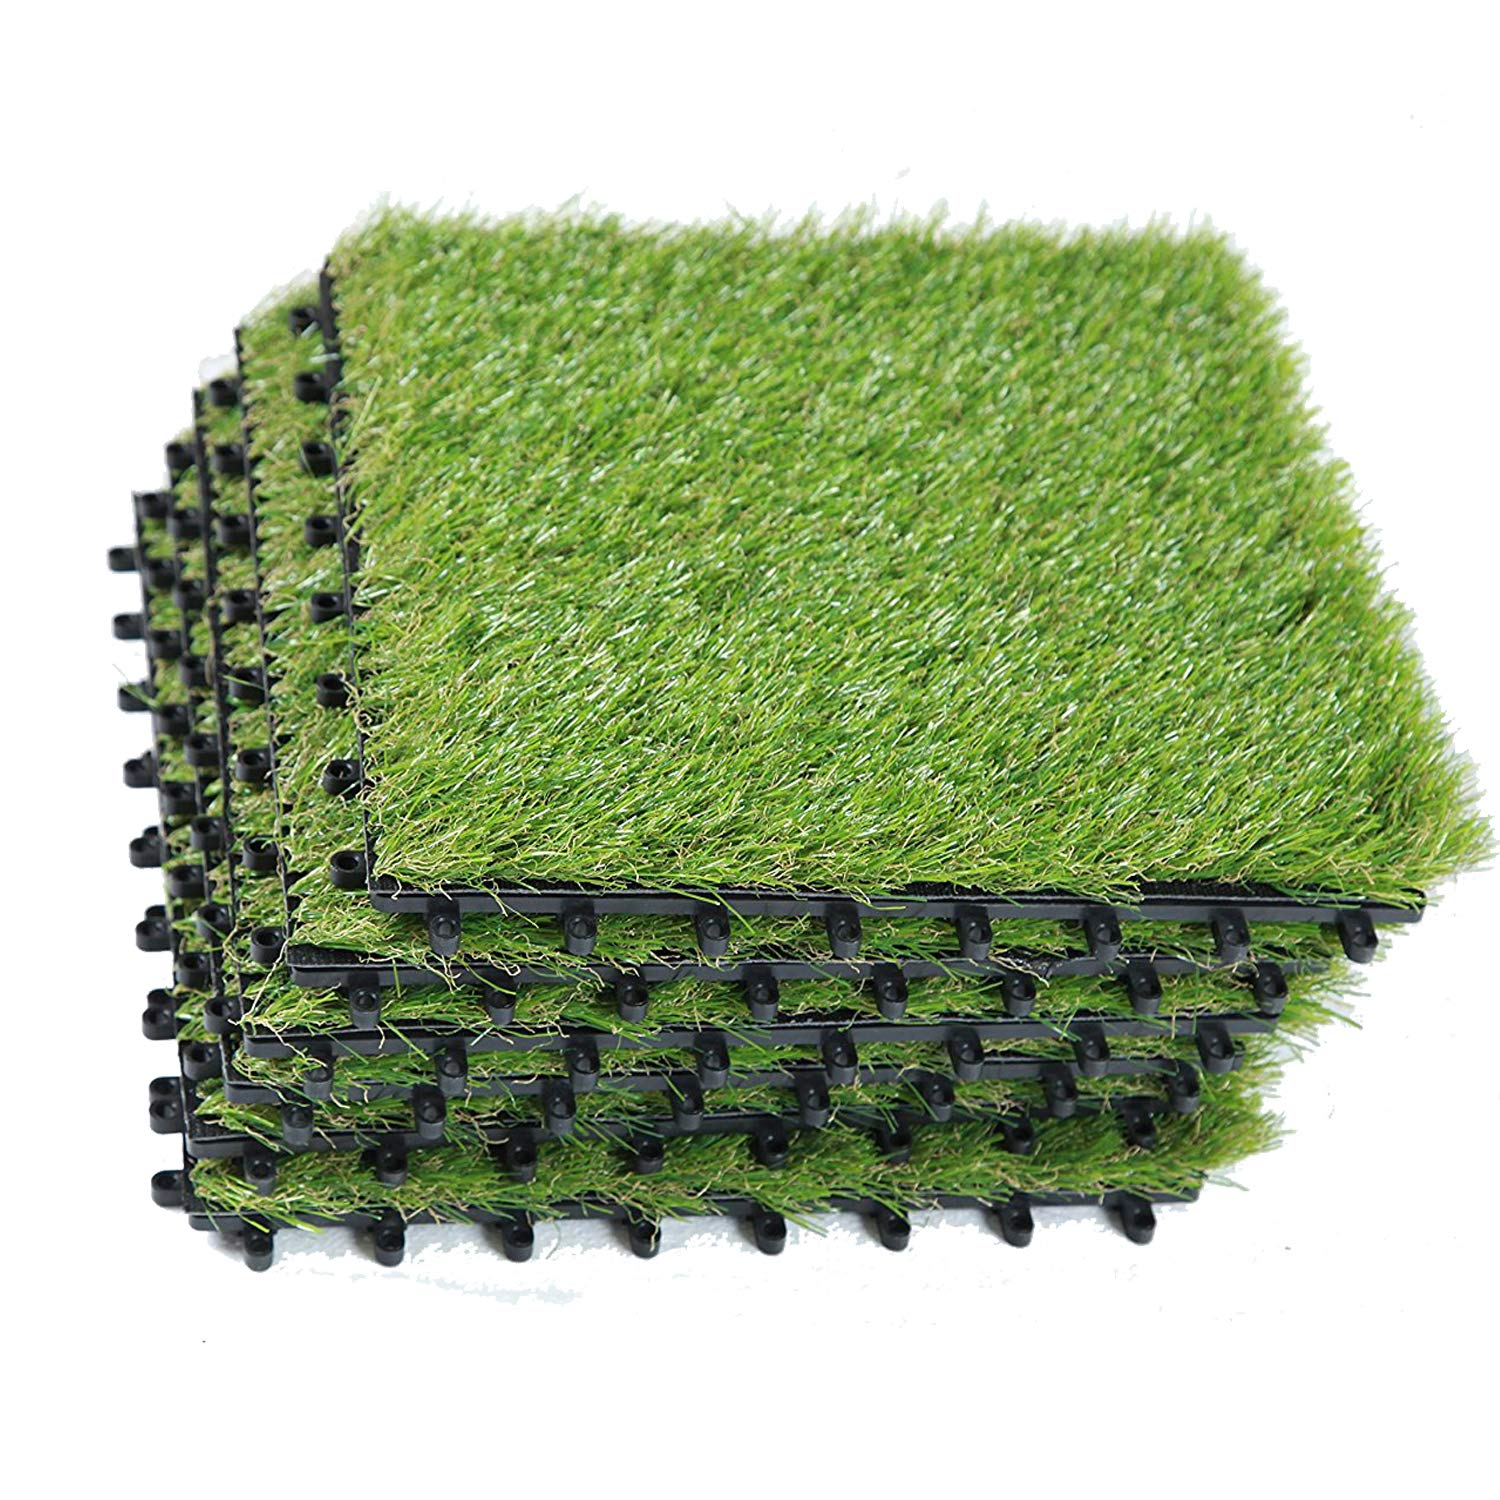 EcoMatrix Artificial Grass Tiles Interlocking Fake Grass Deck Tile Synthetic Grass Turf Carpet Mat for Patio Balcony Garden Flooring Decor 1'x1' (6 Packs)